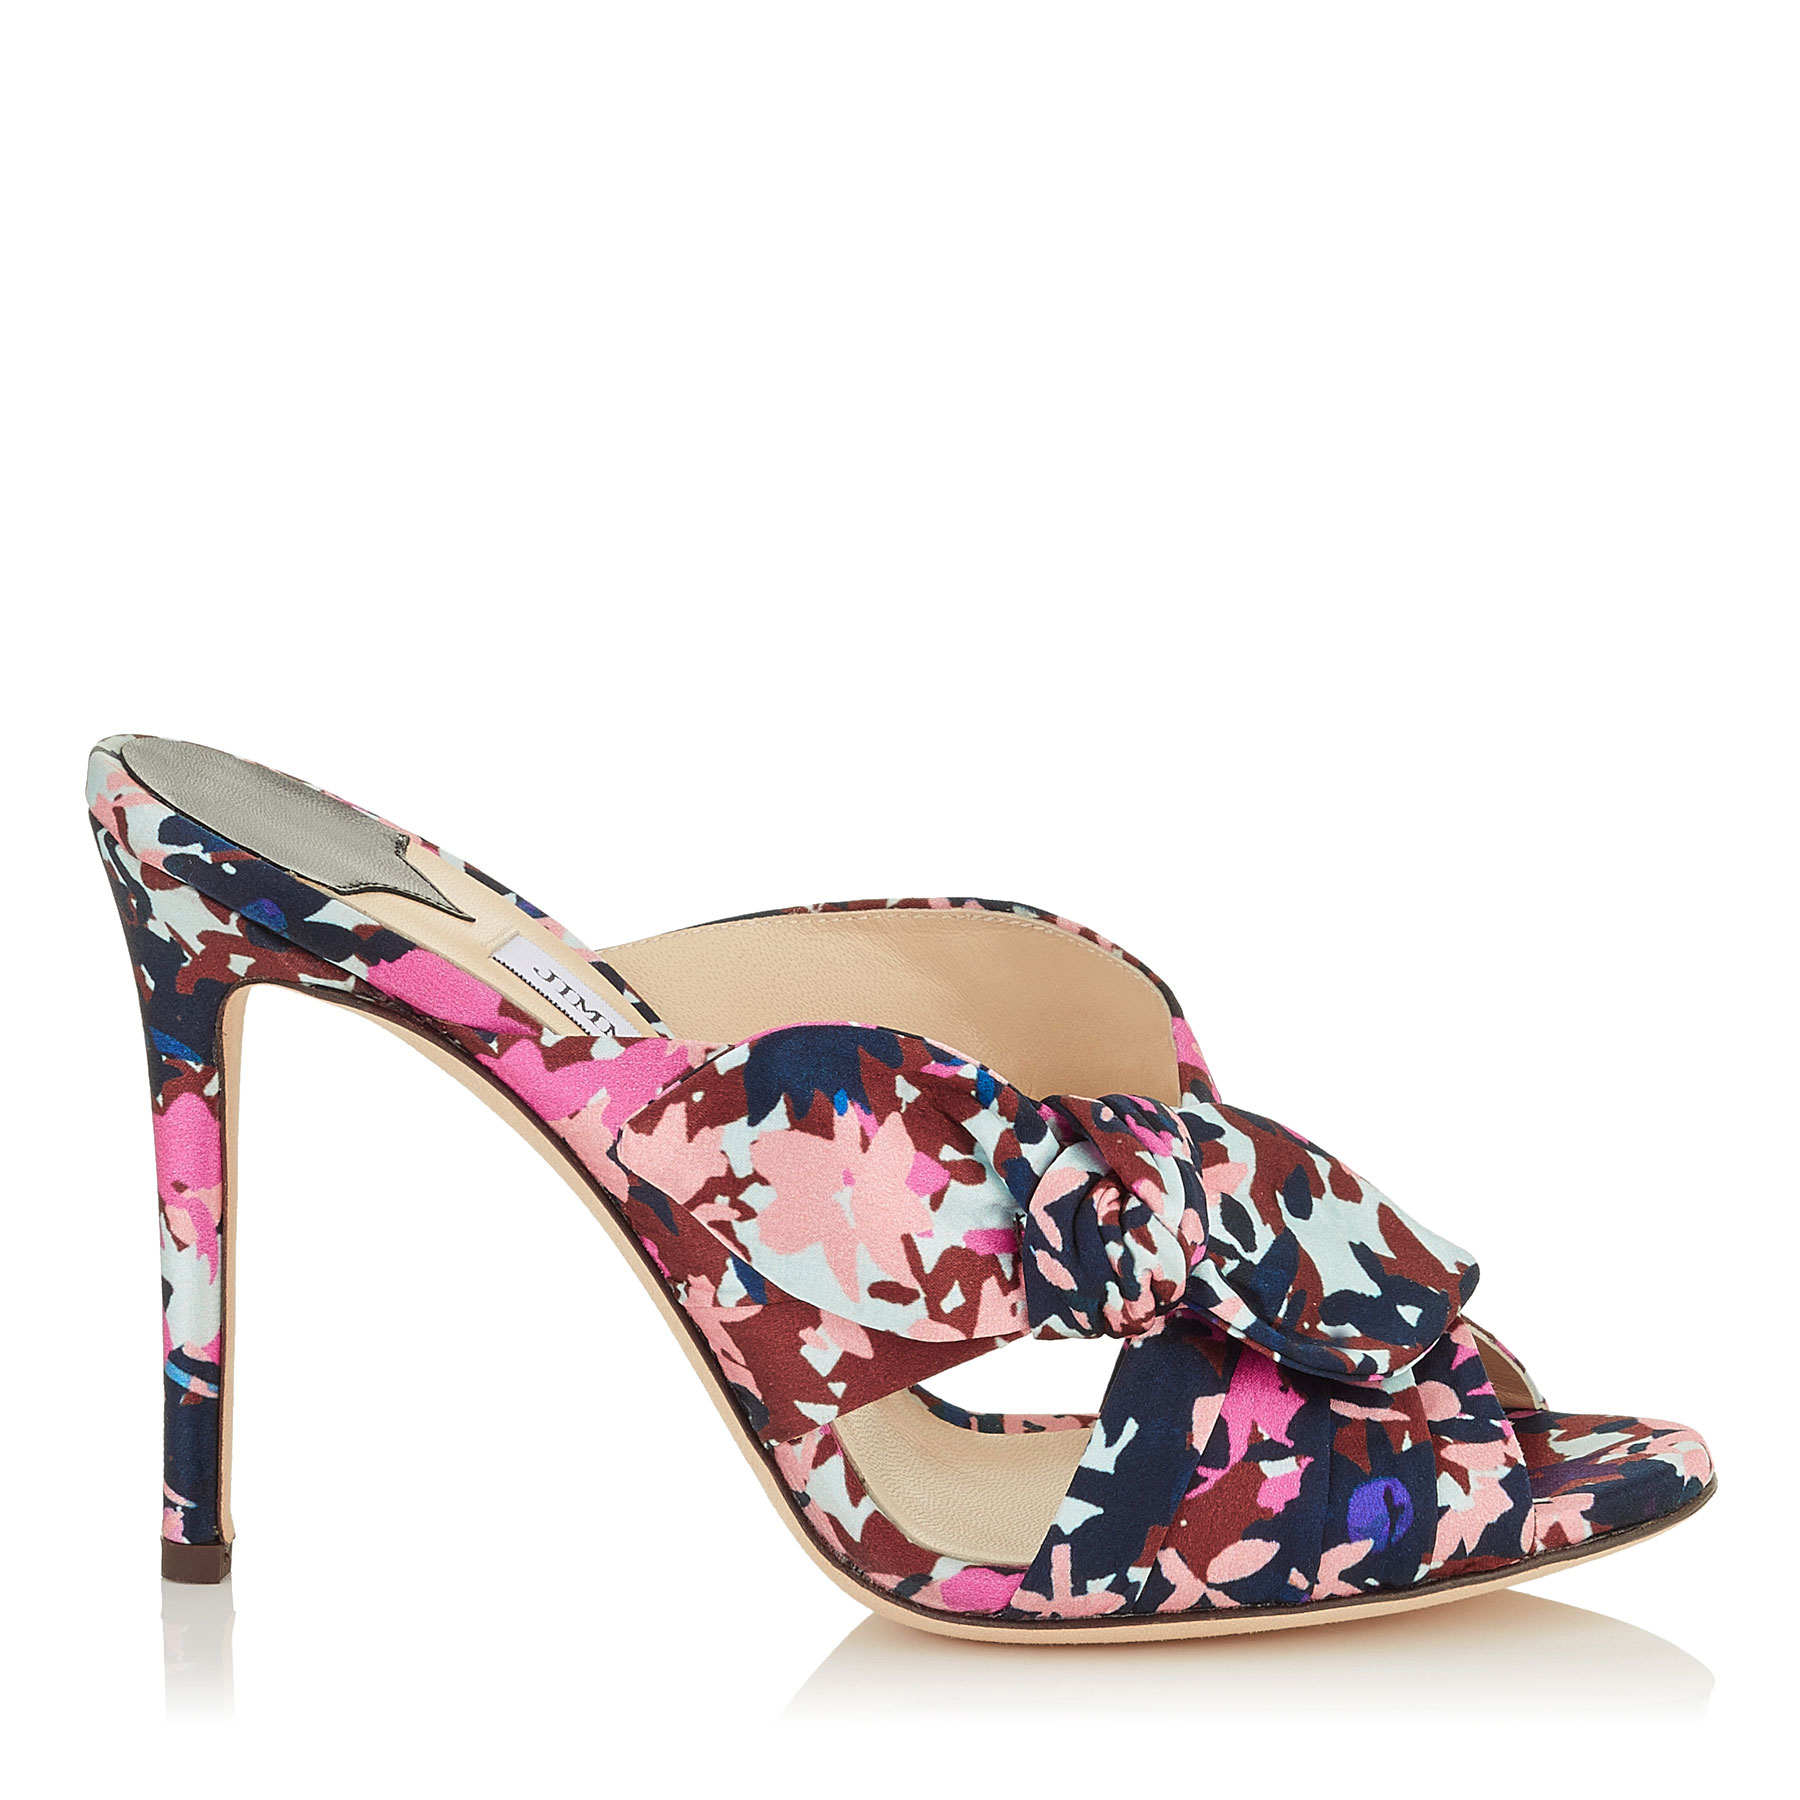 KEELY 100 Dahlia and Brown Camoflower Print Satin Mules